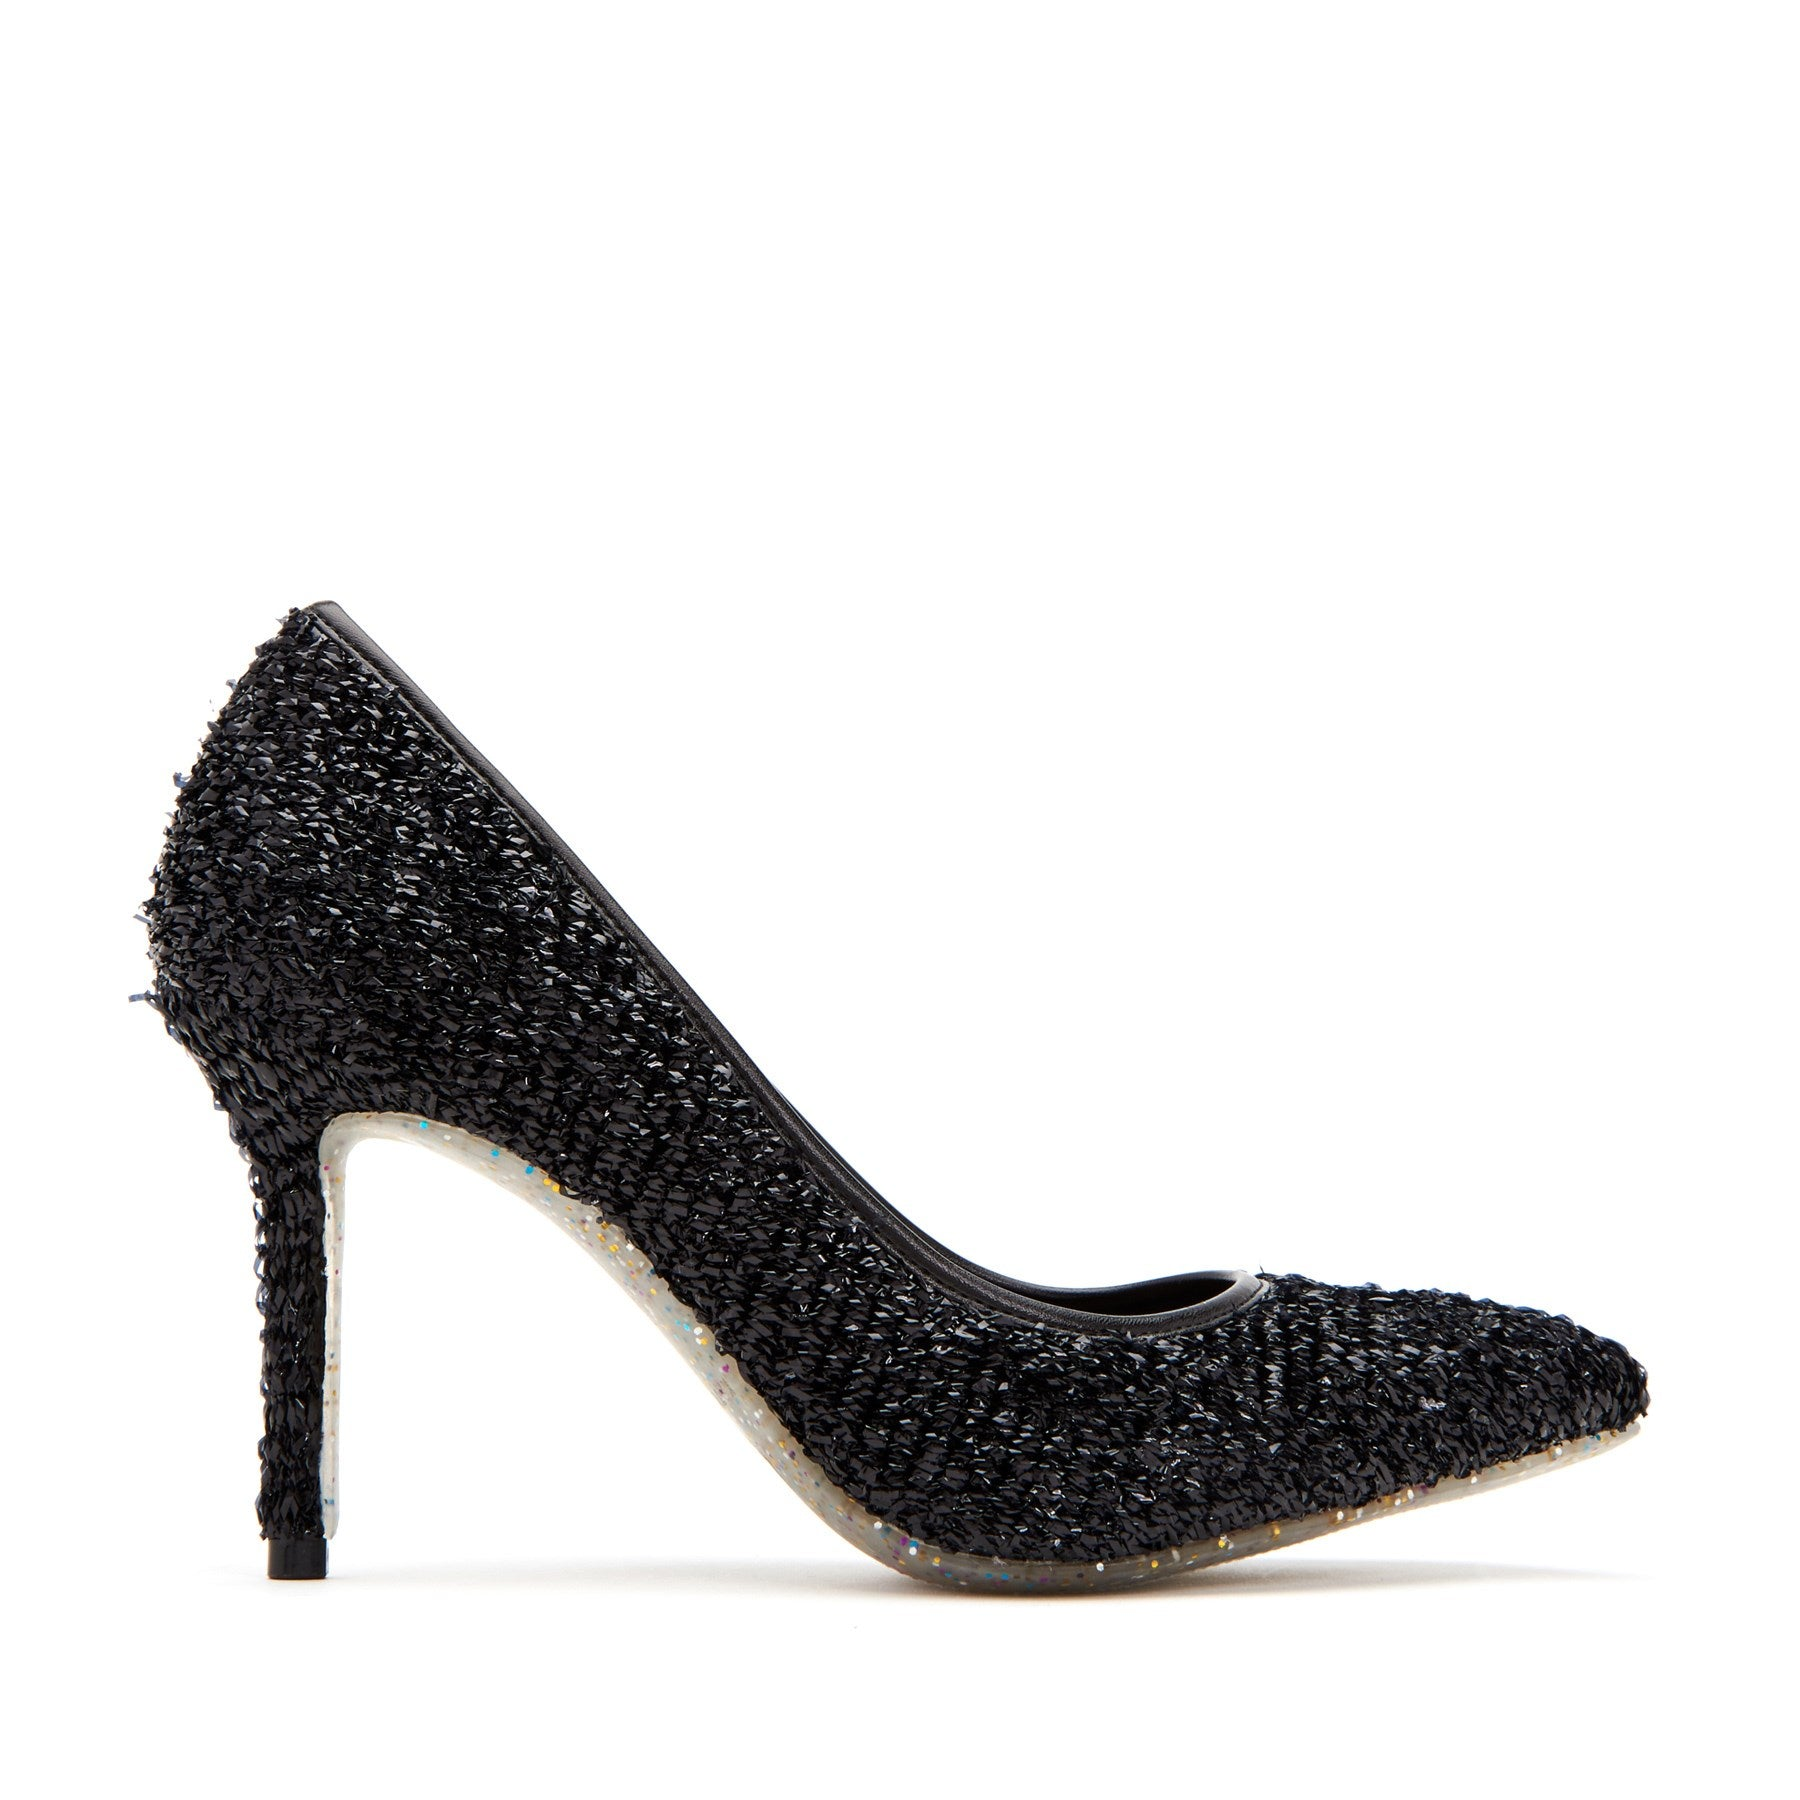 katy perry heeled pump in black size 5   the sissy